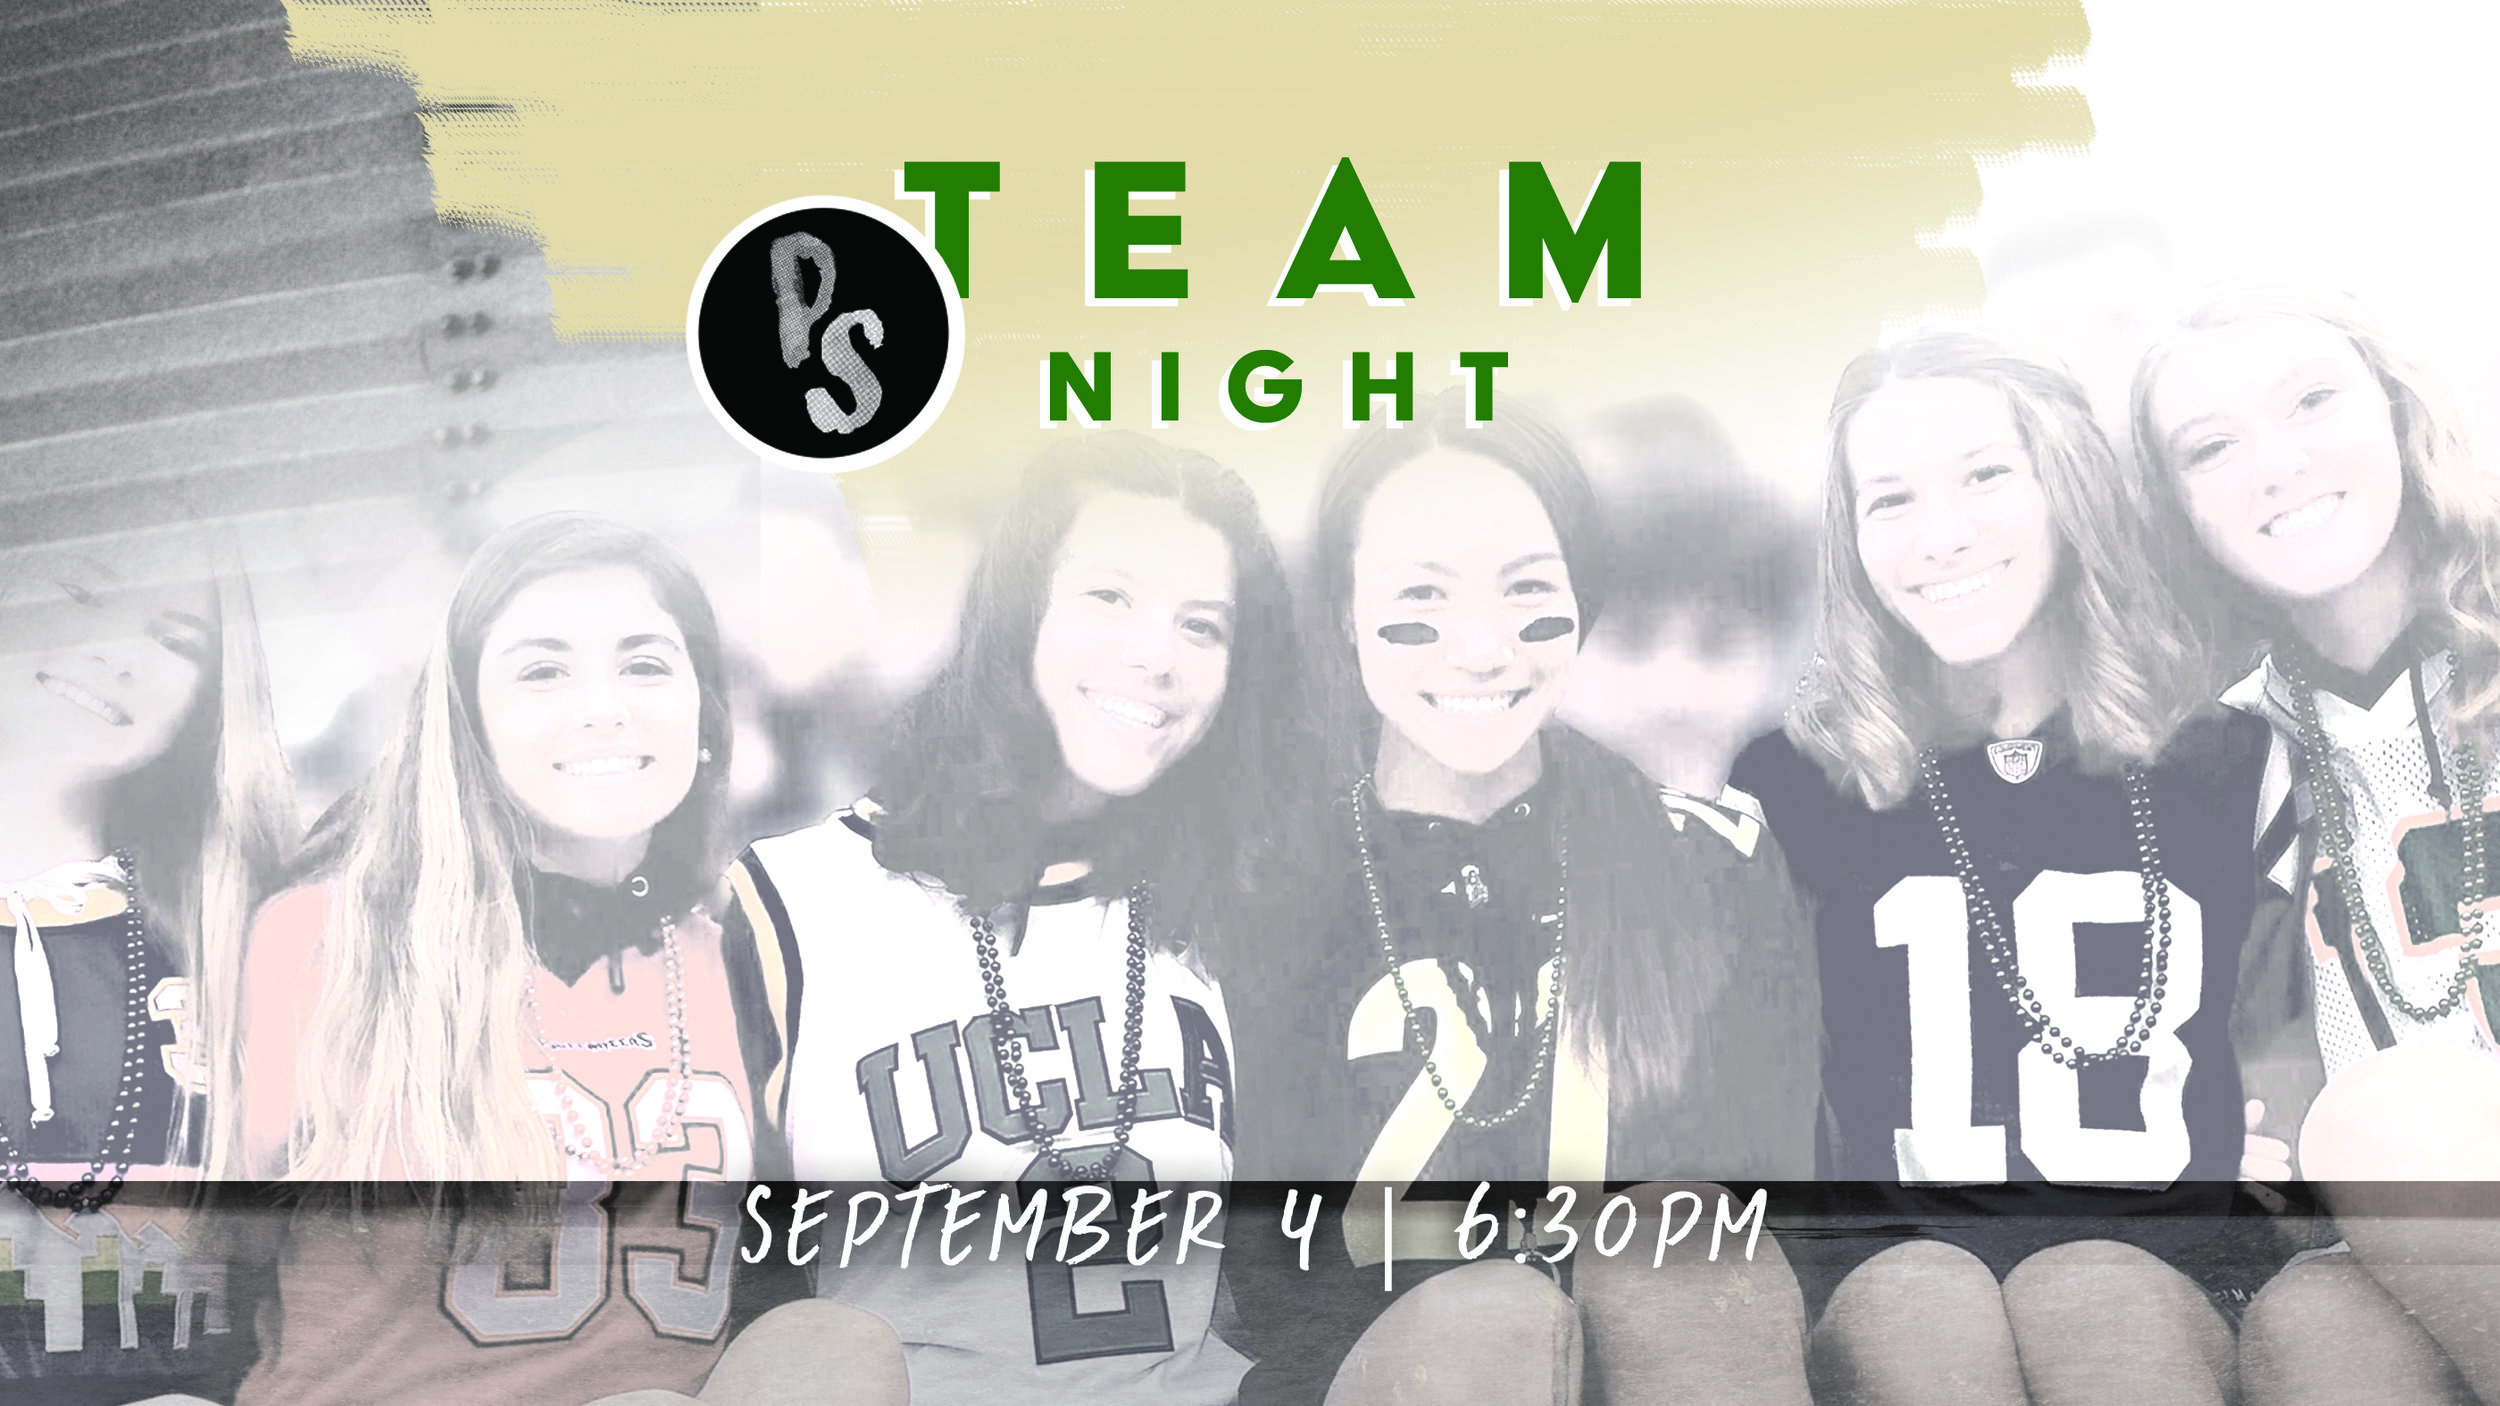 It's also Team Night so wear your jersey and bring your friends!